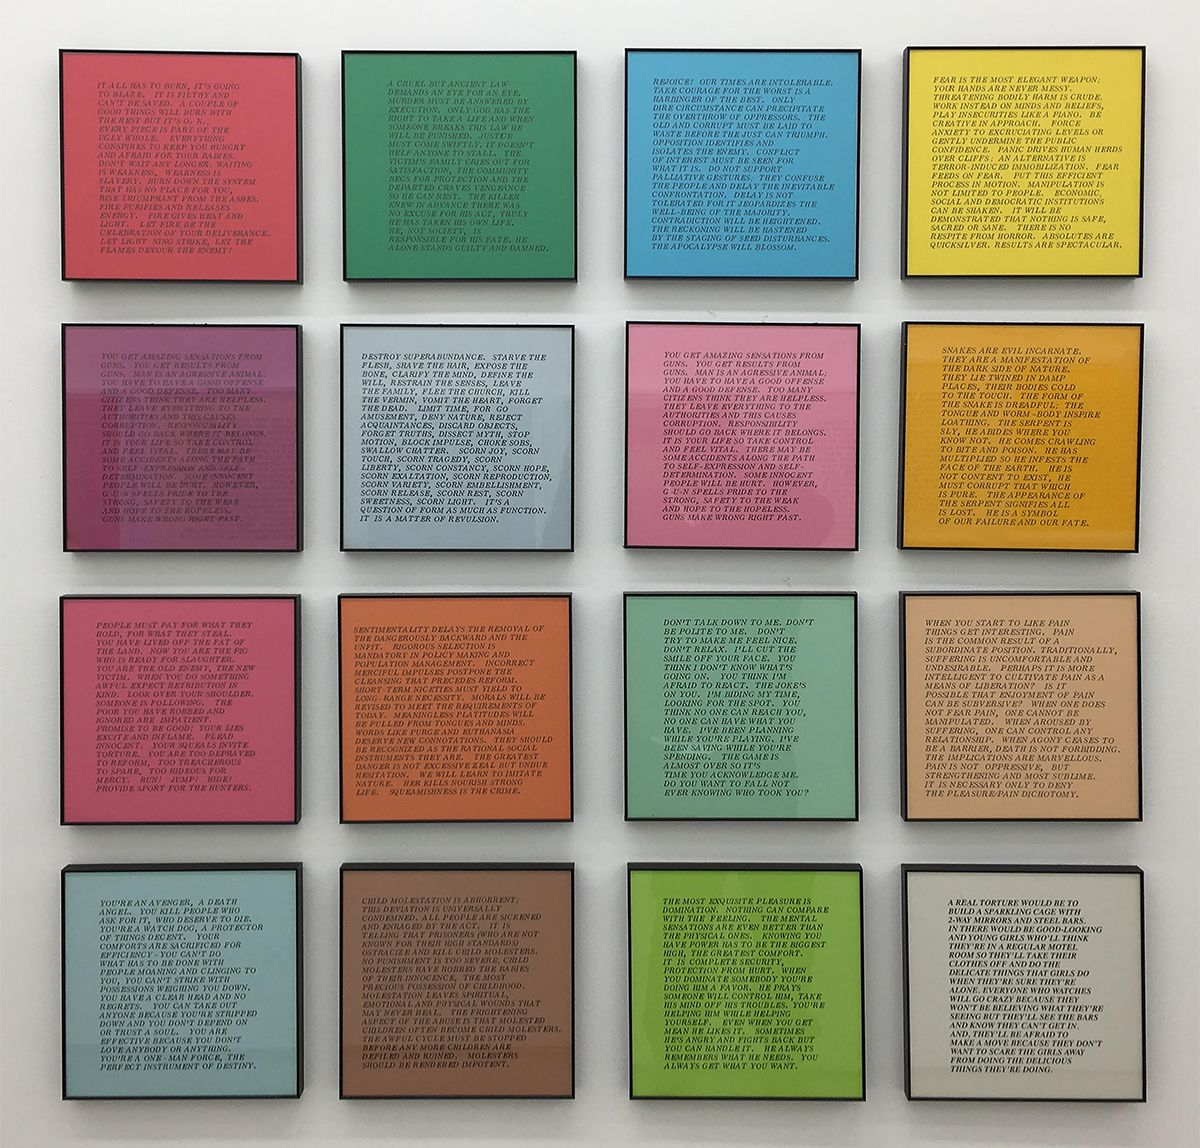 REJOICE! OUR TIMES ARE INTOLERABLE: Jenny Holzer's Street Posters, 1977-1982 at Alden Projects, 2017.Courtesy of Alden Projects.